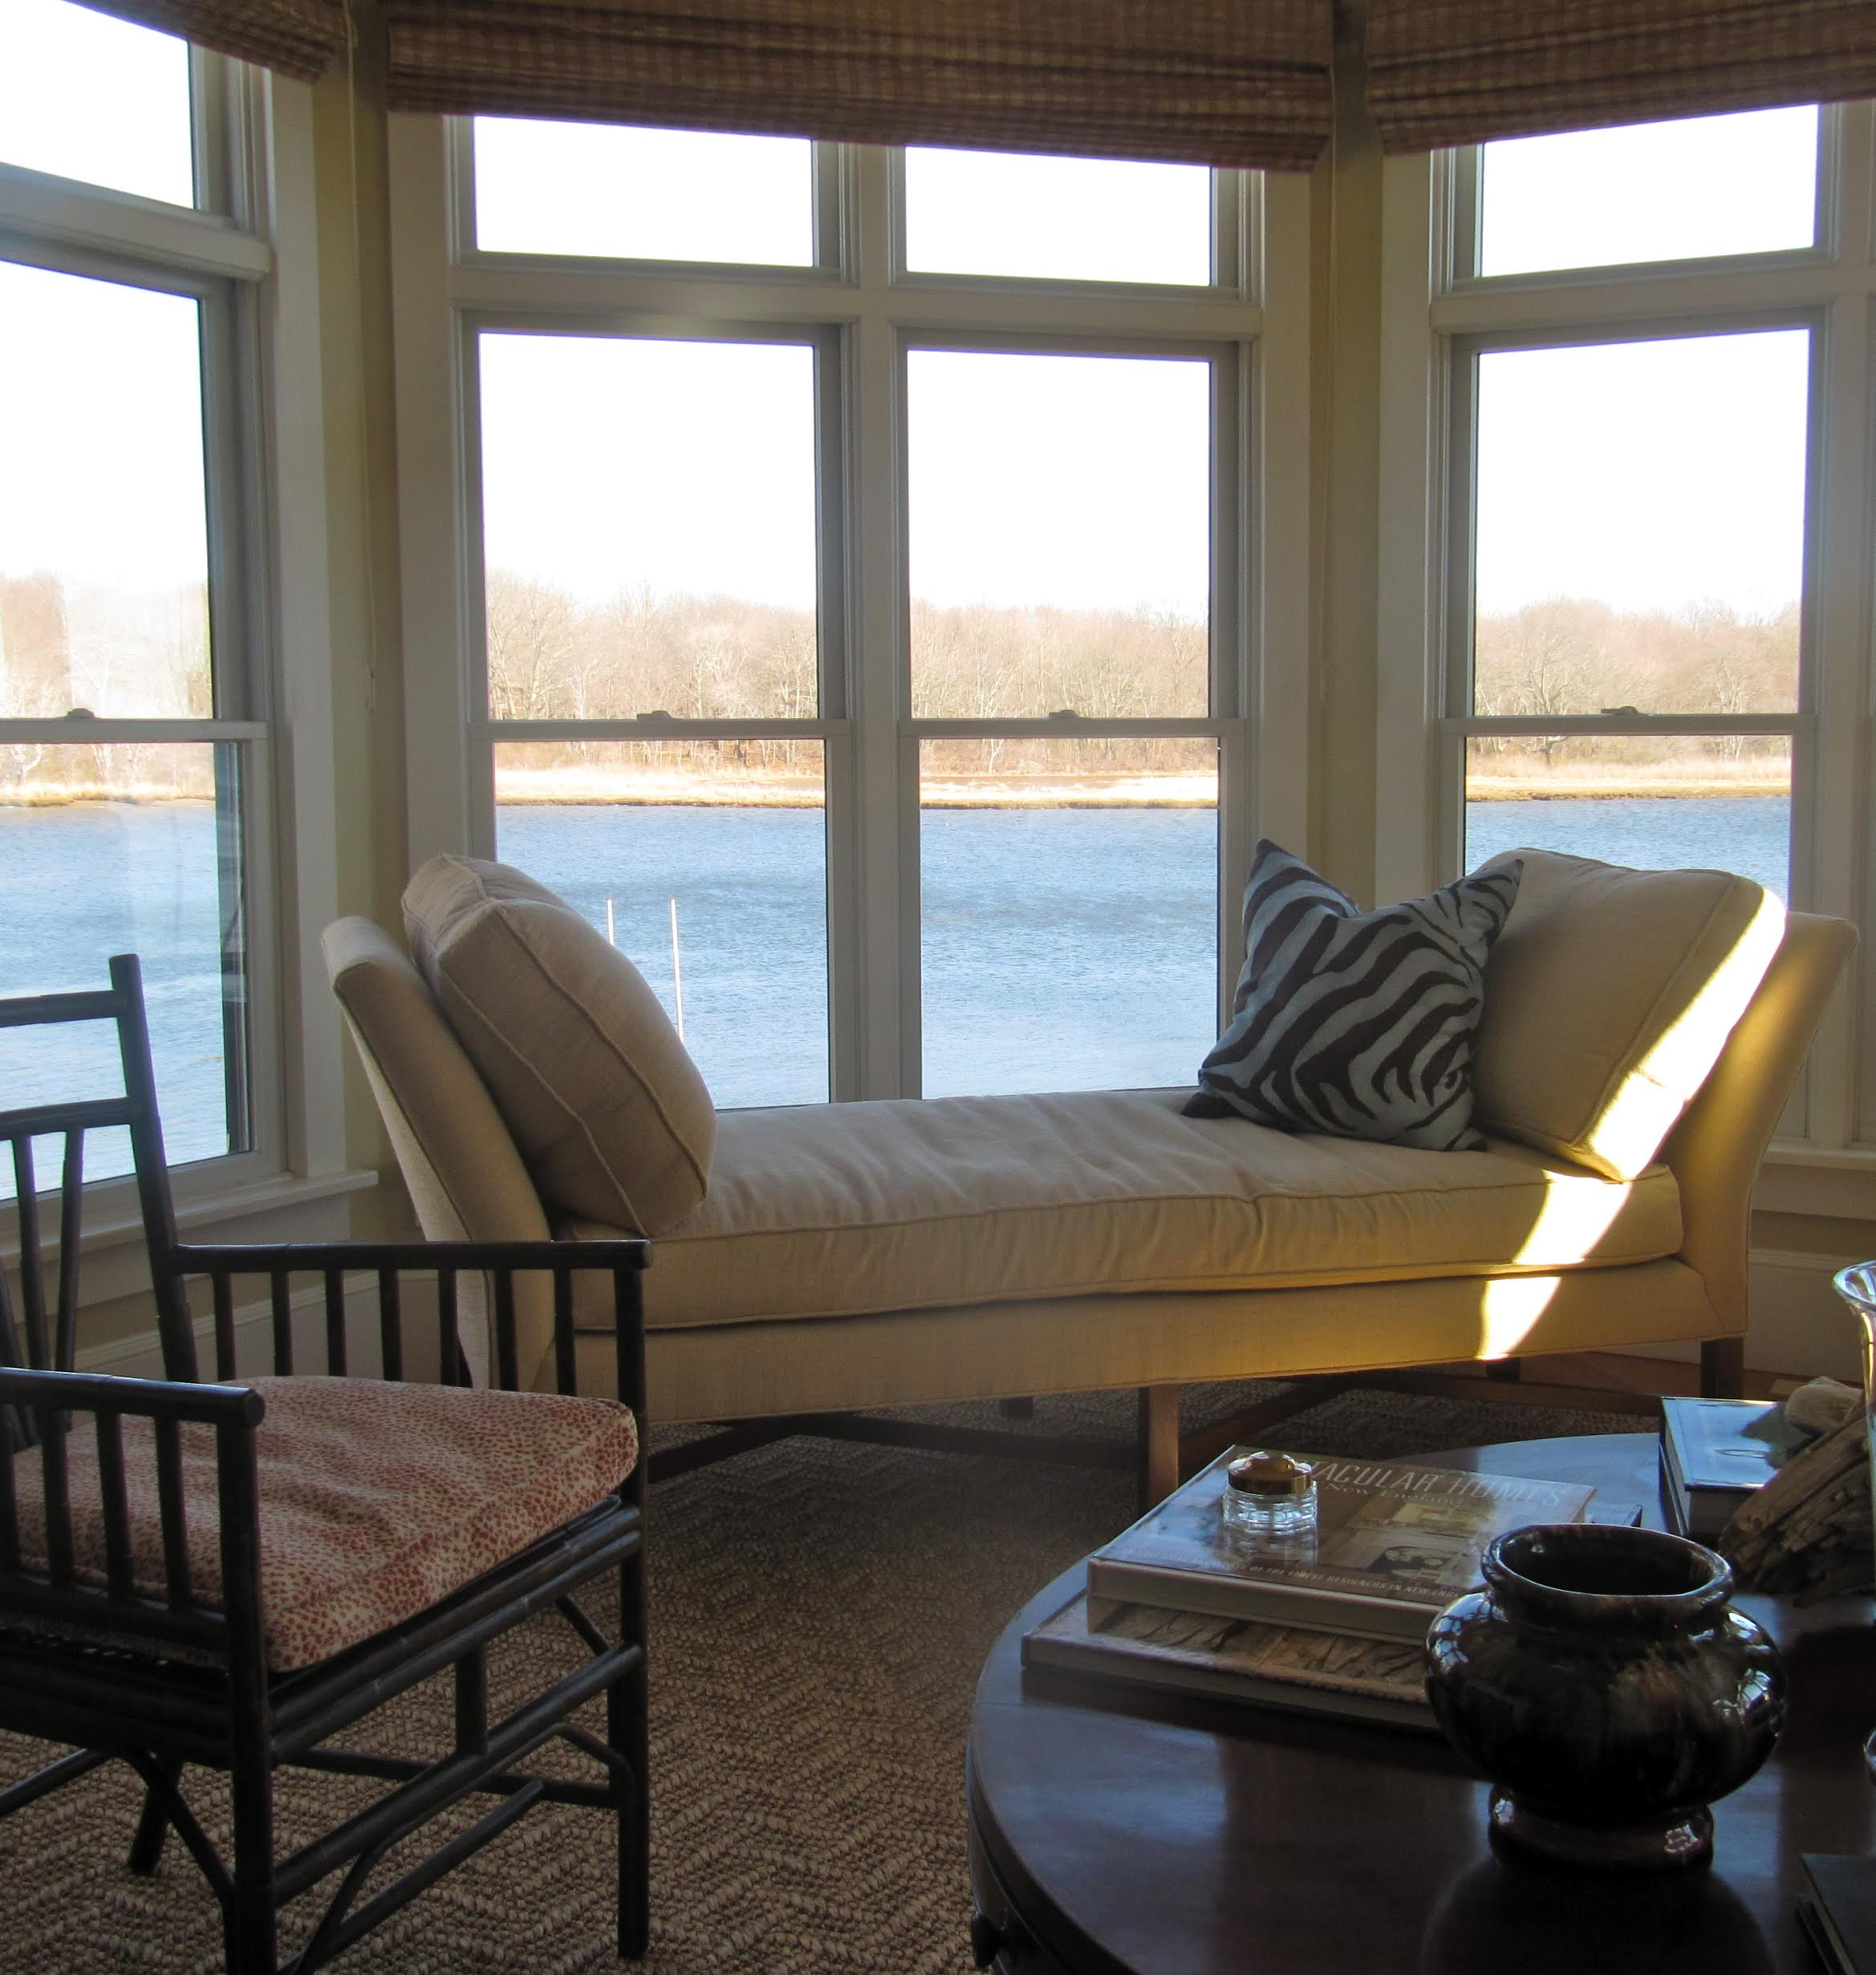 Award Winning Interior Designer Moves To Newport RI Newport Buzz